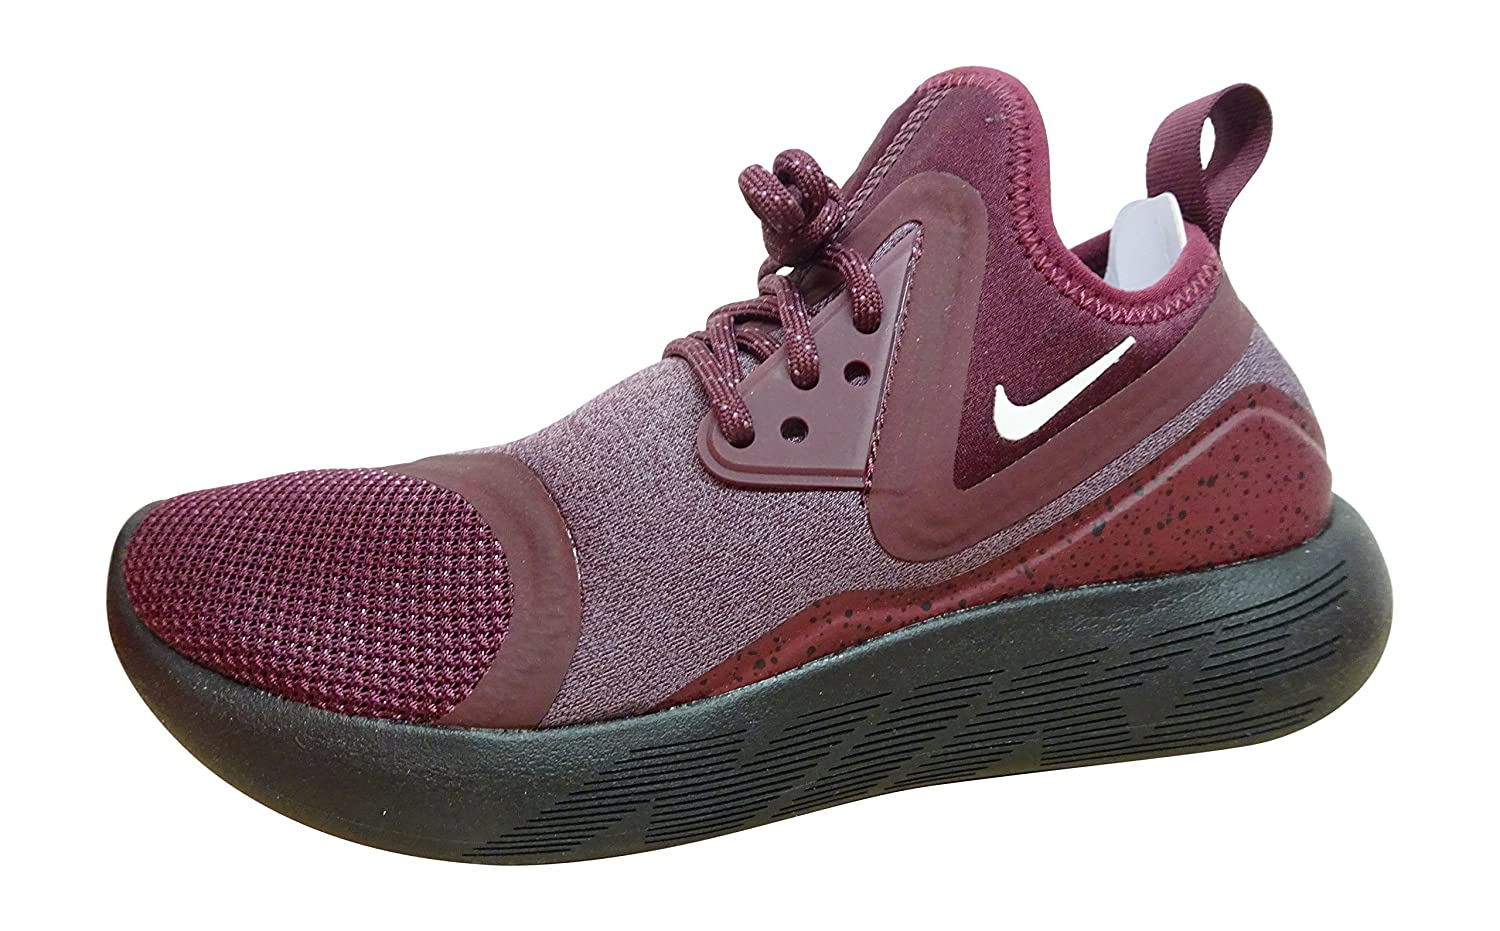 NIKE Lunarcharge Essential Womens Running Shoes B072FBGR42 6 B(M) US|Night Maroon Sail Violet Dust 600